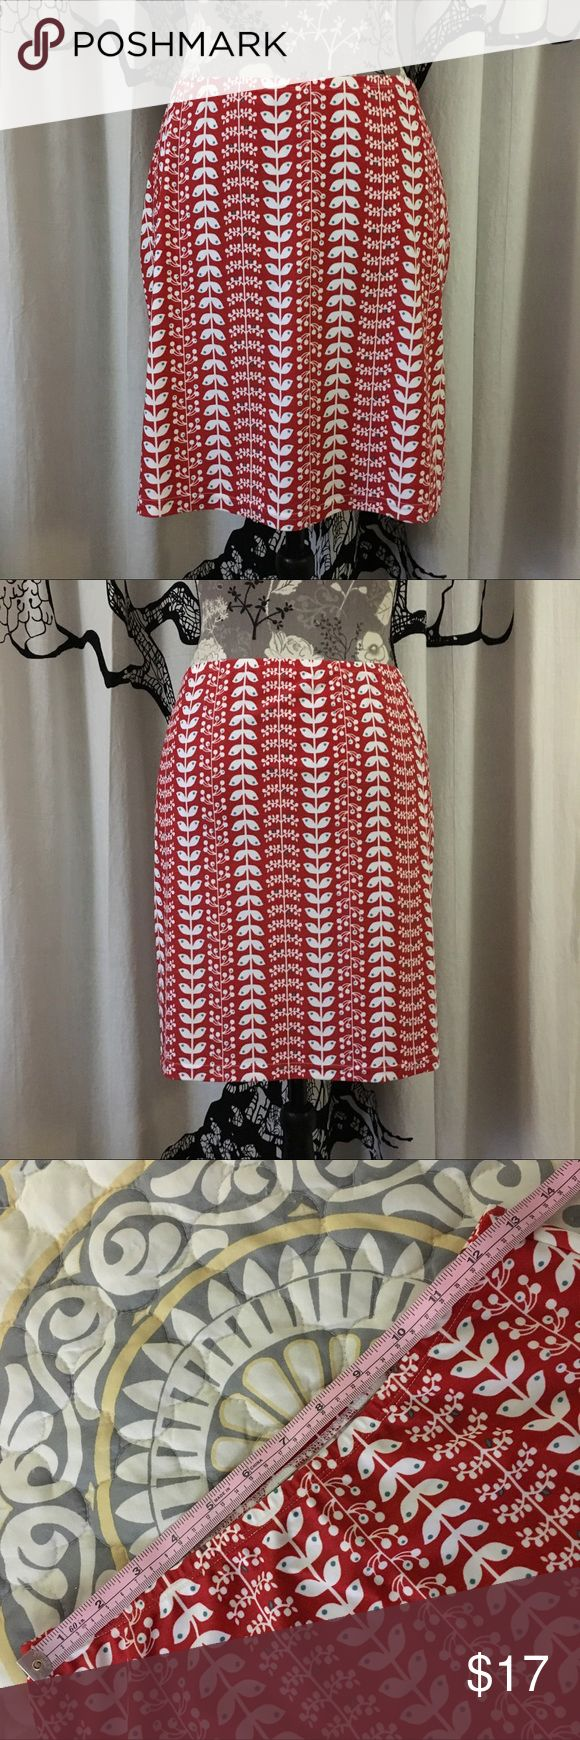 Patagonia Skirt or Swim Cover-Up Super cute red and white skirt by Patagonia. Lightweight and comfortable - perfect for summer, and the fabric makes it great as a swim cover-up as well. Dries quickly. Only worn a couple of times, and in perfect condition. True to size, in my opinion. Please check measurements given in photos against your own for accurate sizing. Patagonia Skirts